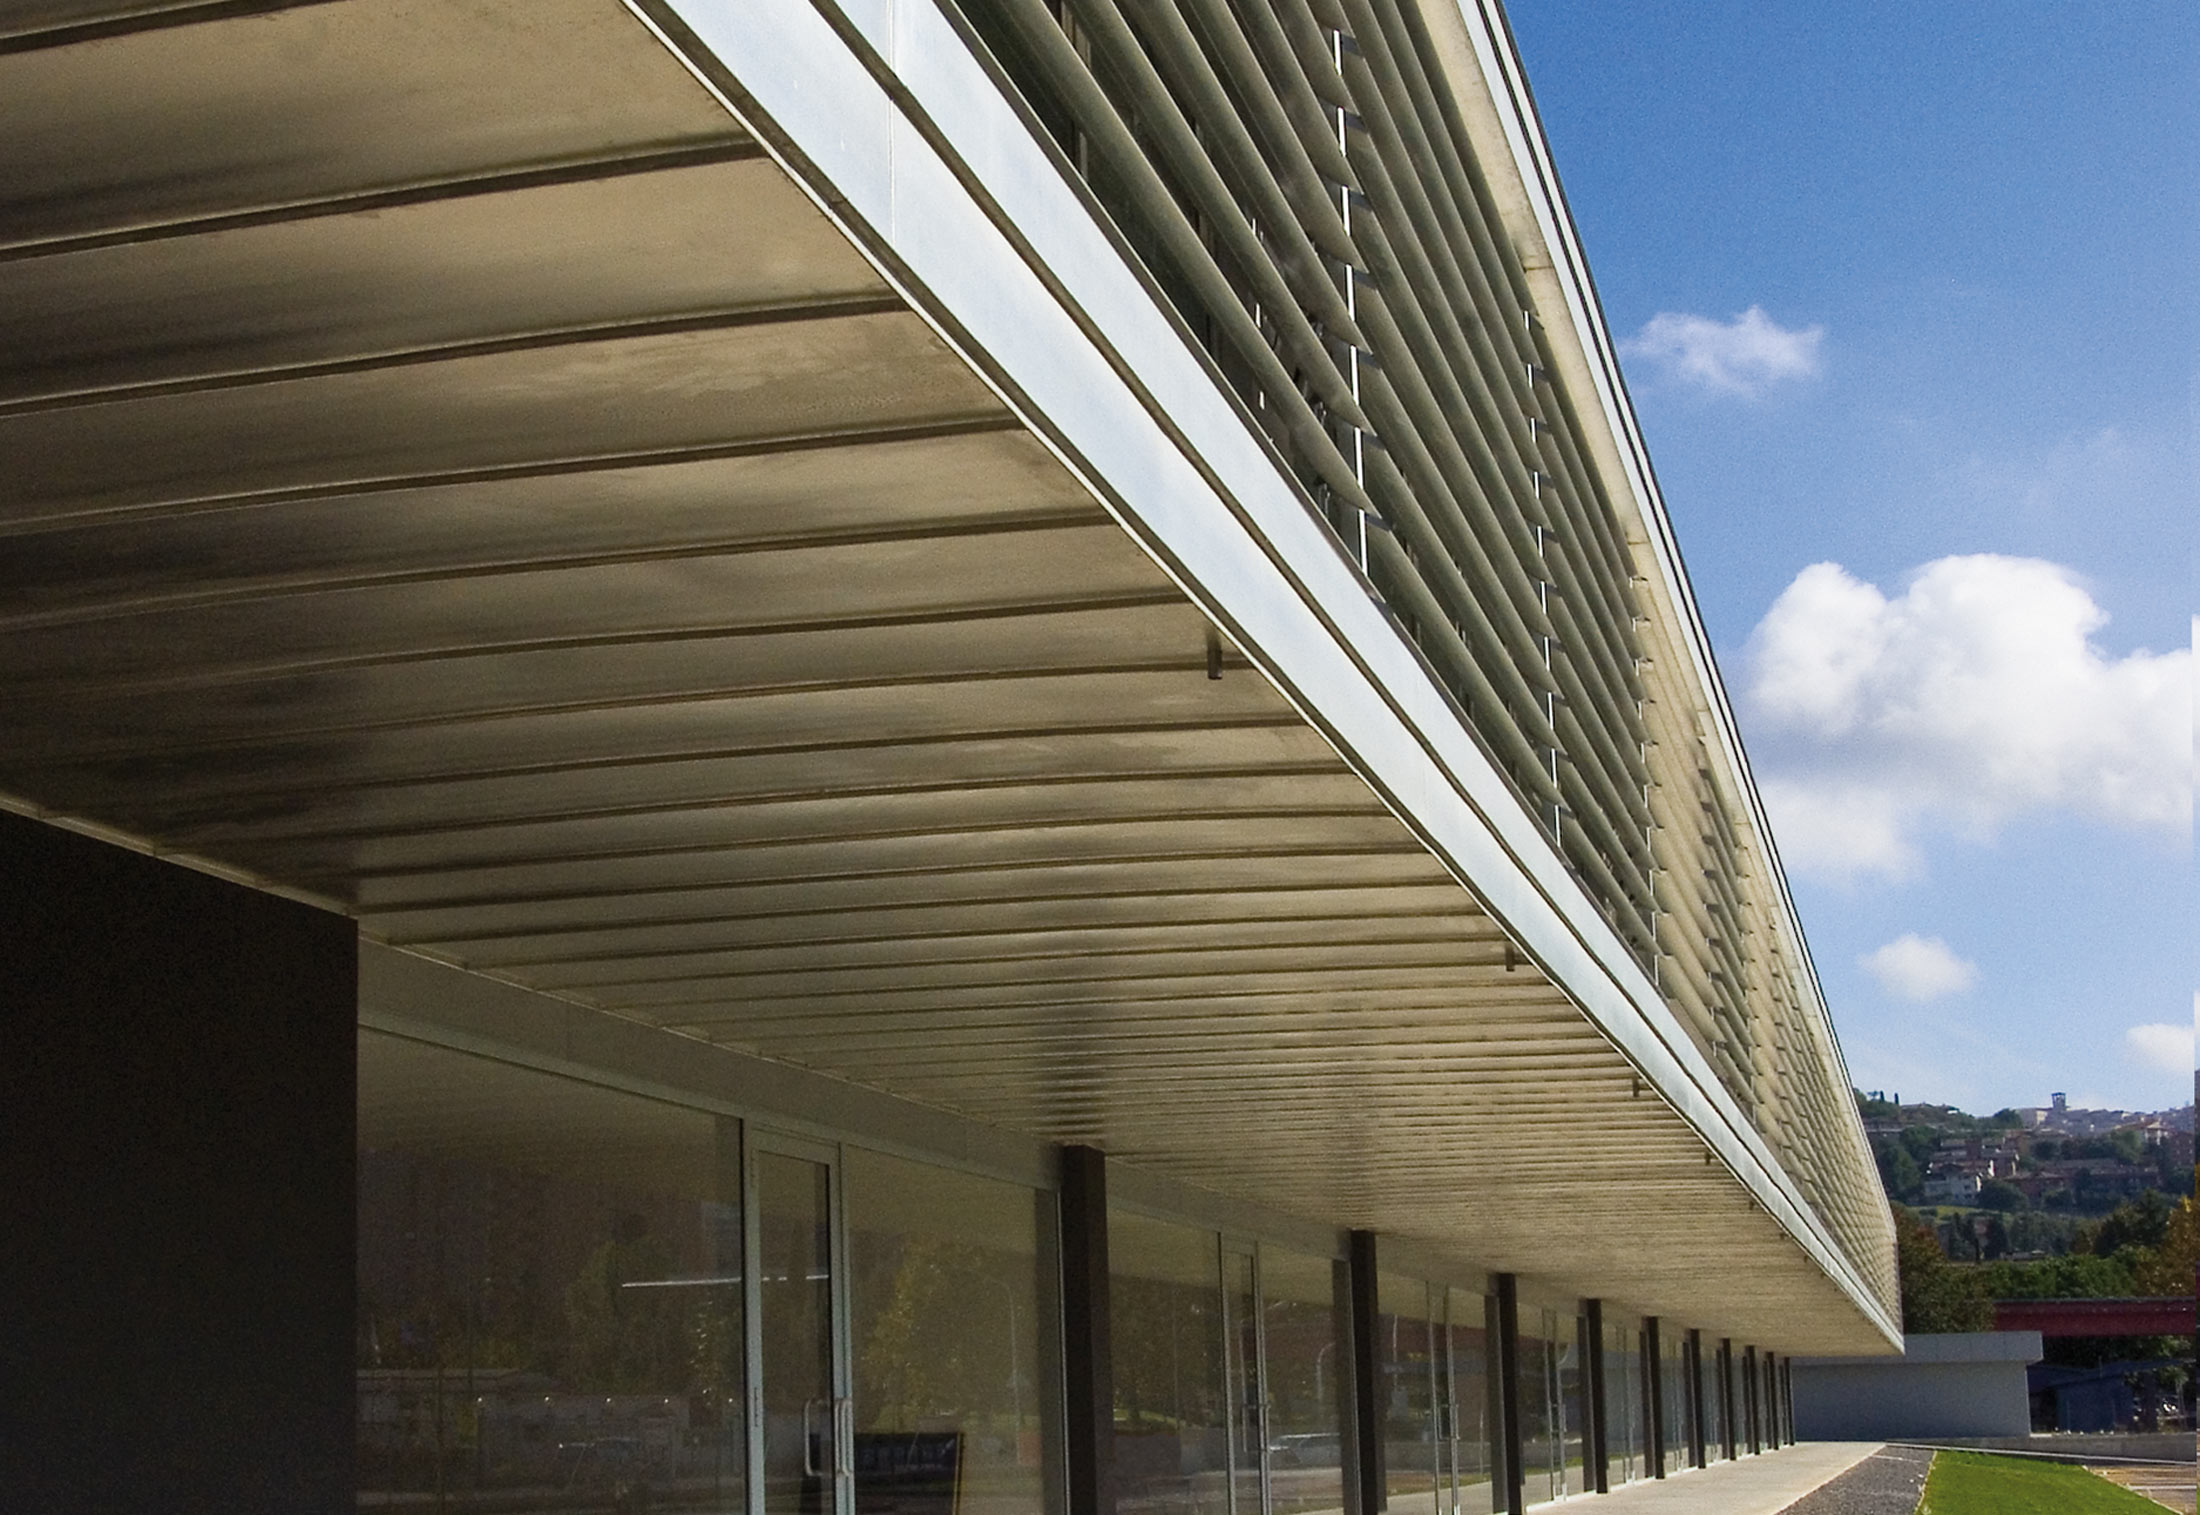 Tecu 174 Zinn Panels With Solar Shading Lamellas By Kme